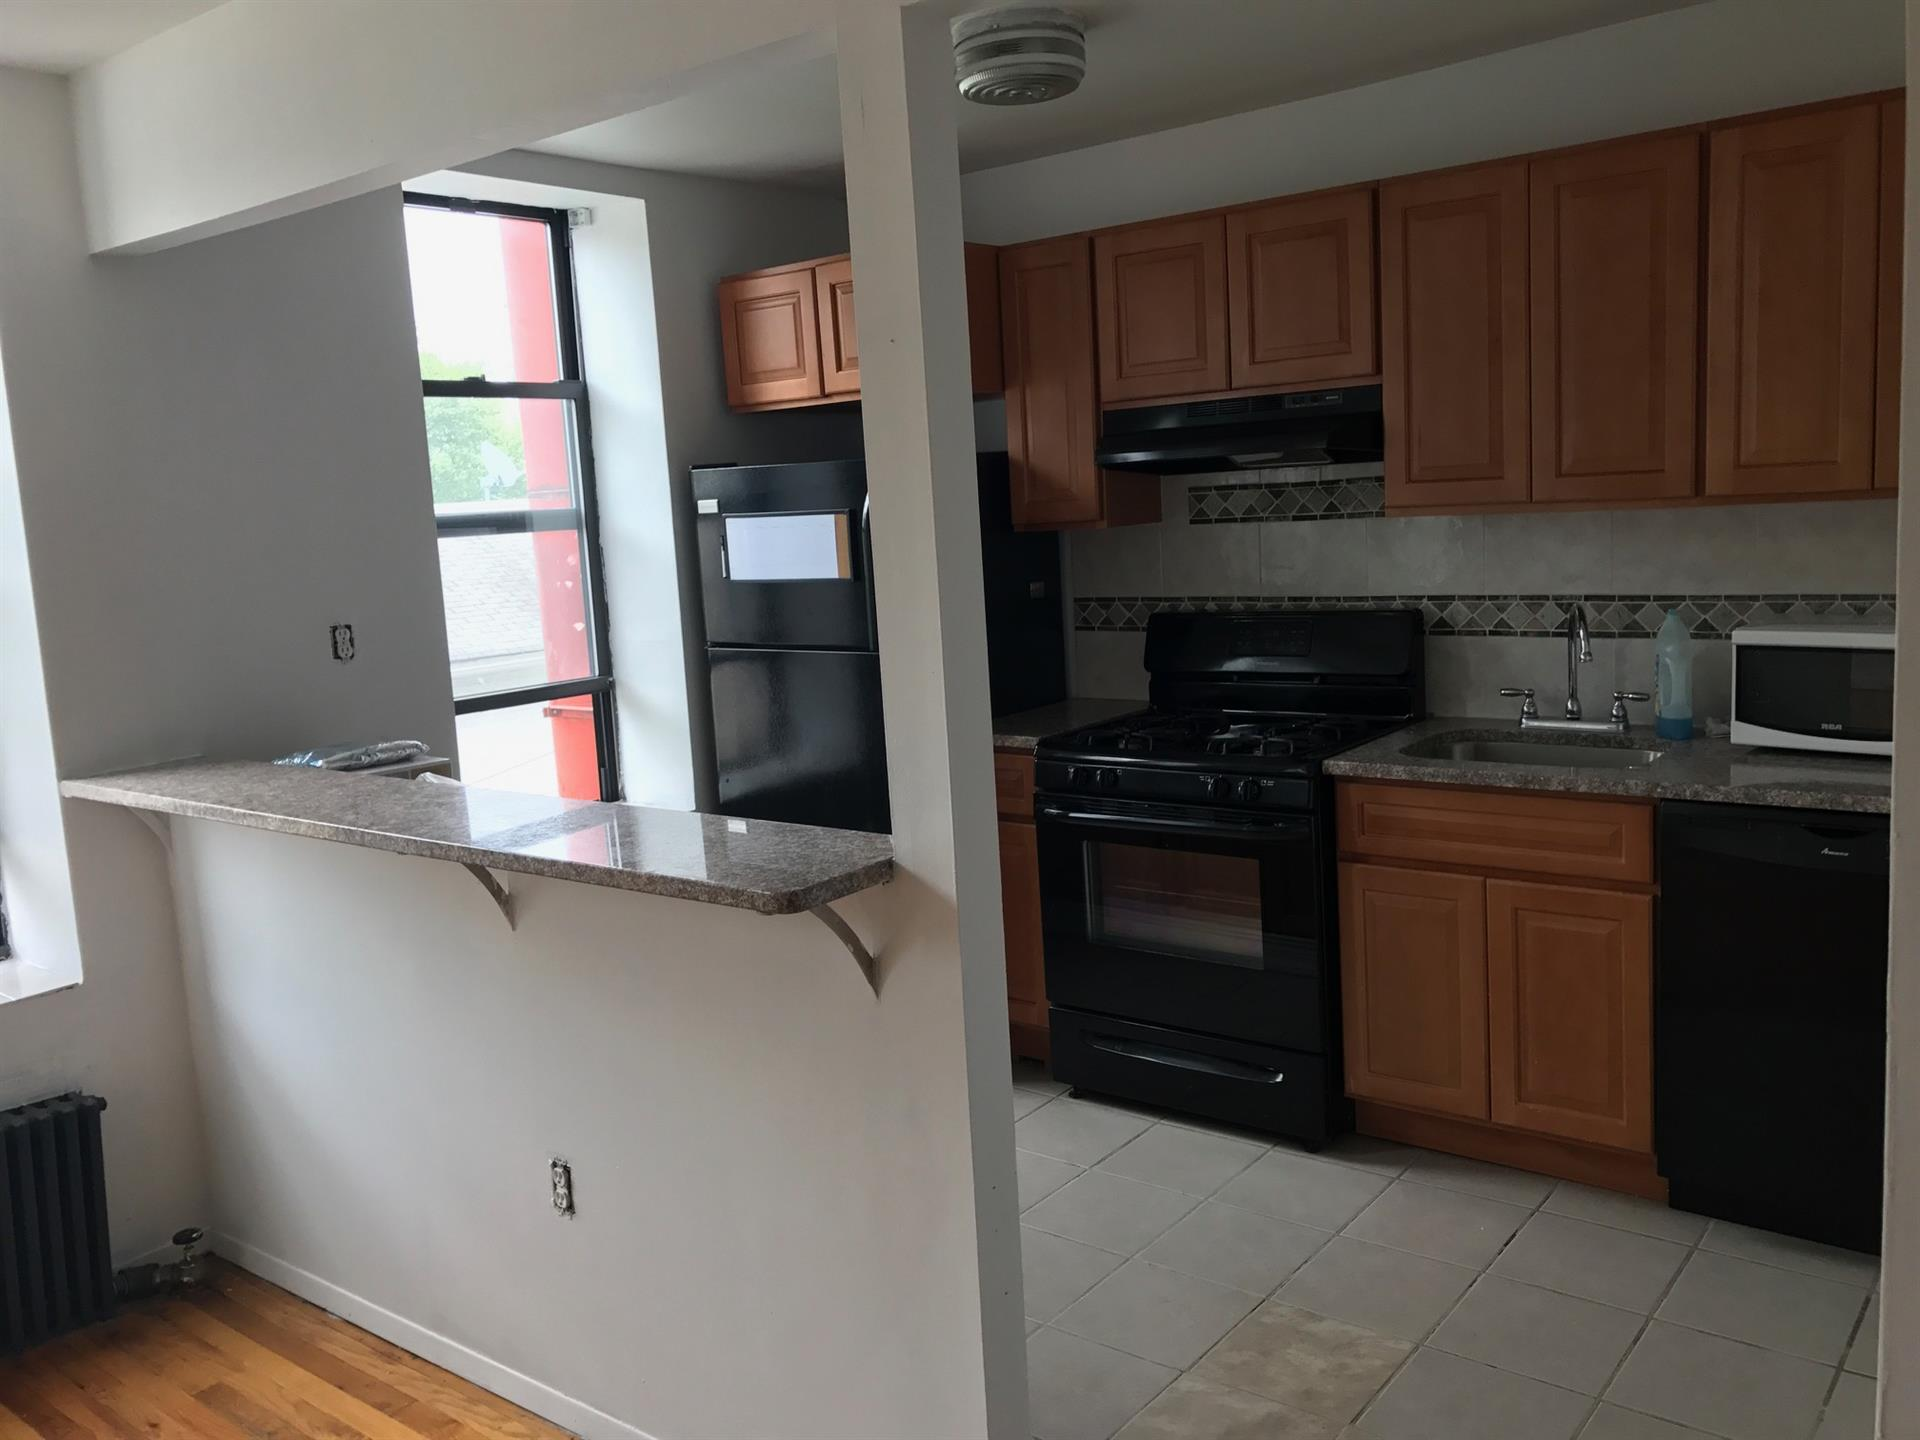 Additional photo for property listing at 8413 3rd Ave  Brooklyn, New York 11209 United States